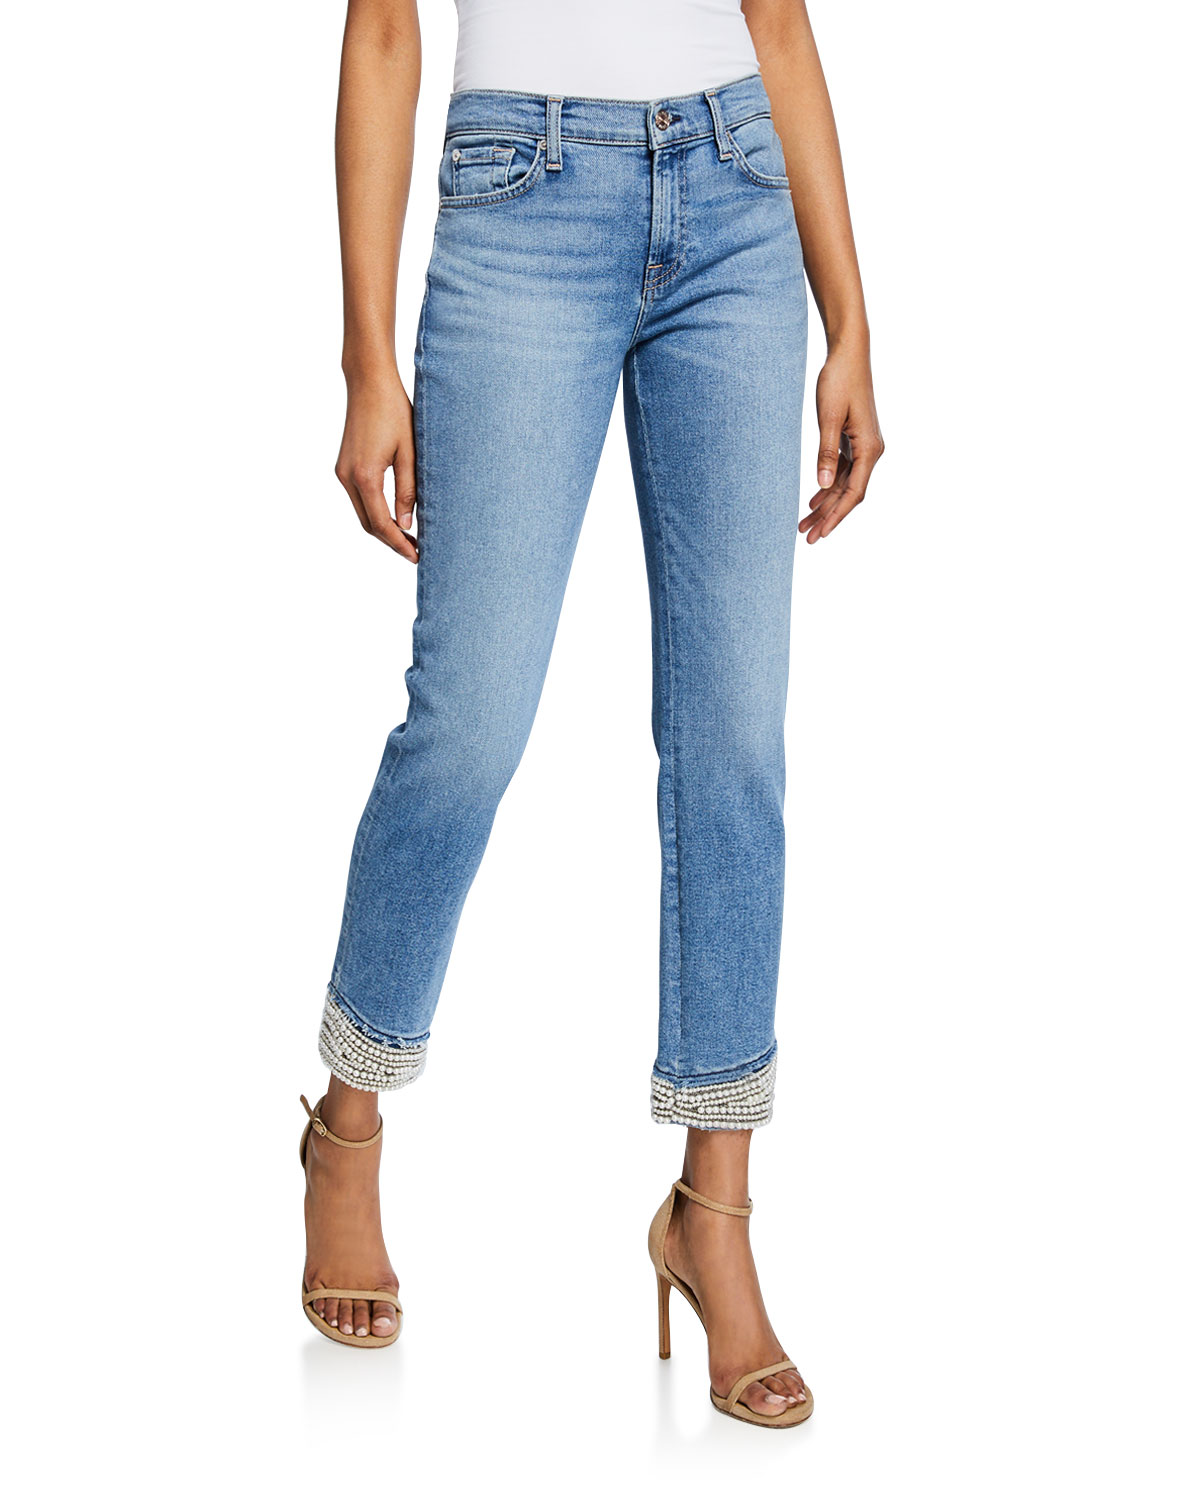 7 For All Mankind Jeans MID-RISE ANKLE SKINNY JEANS WITH PEARL CUFFS